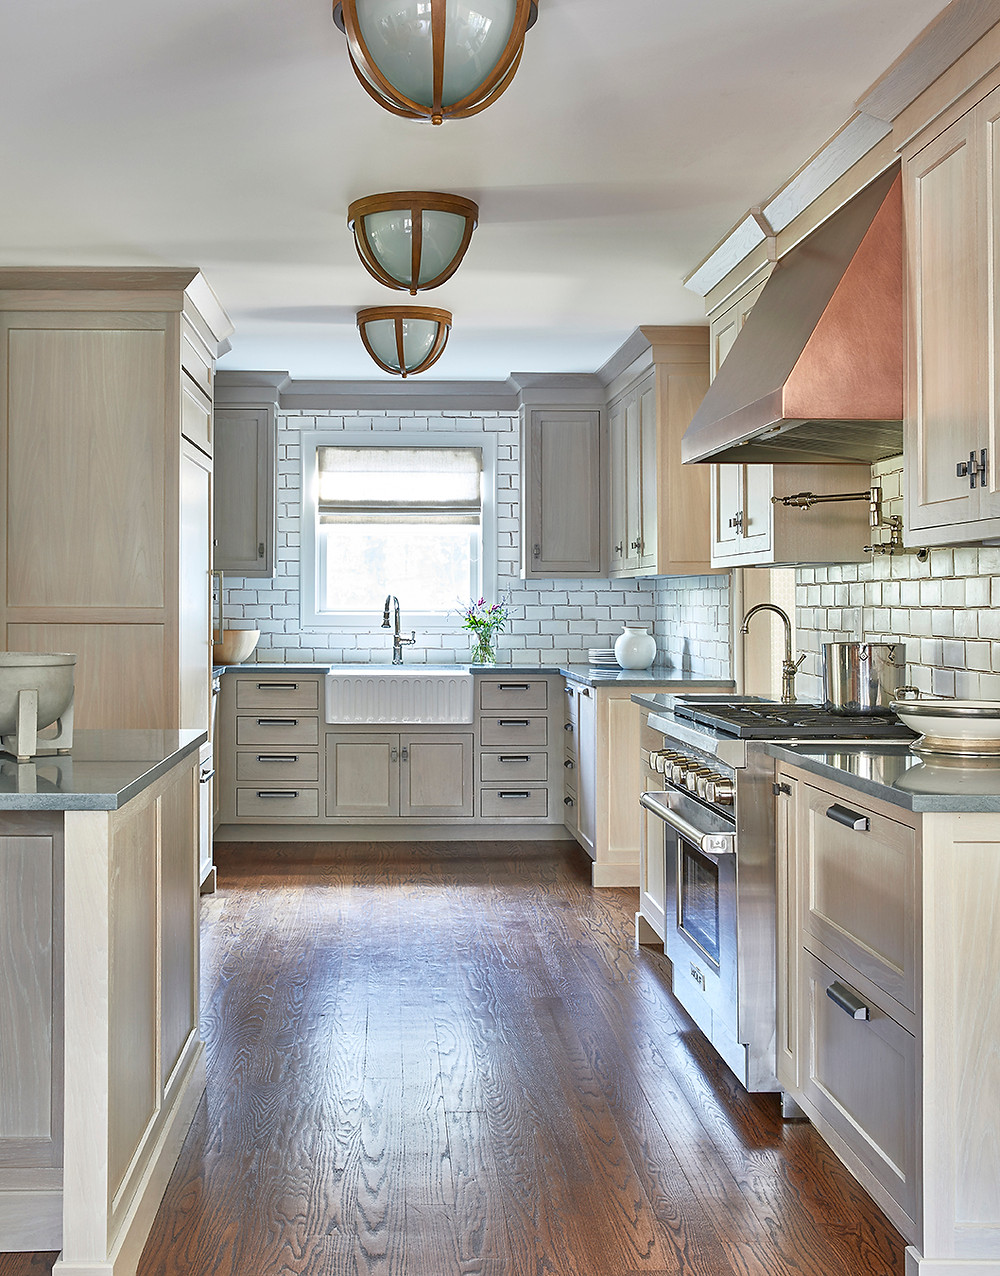 kitchen with wood cabinetry and handmade tile